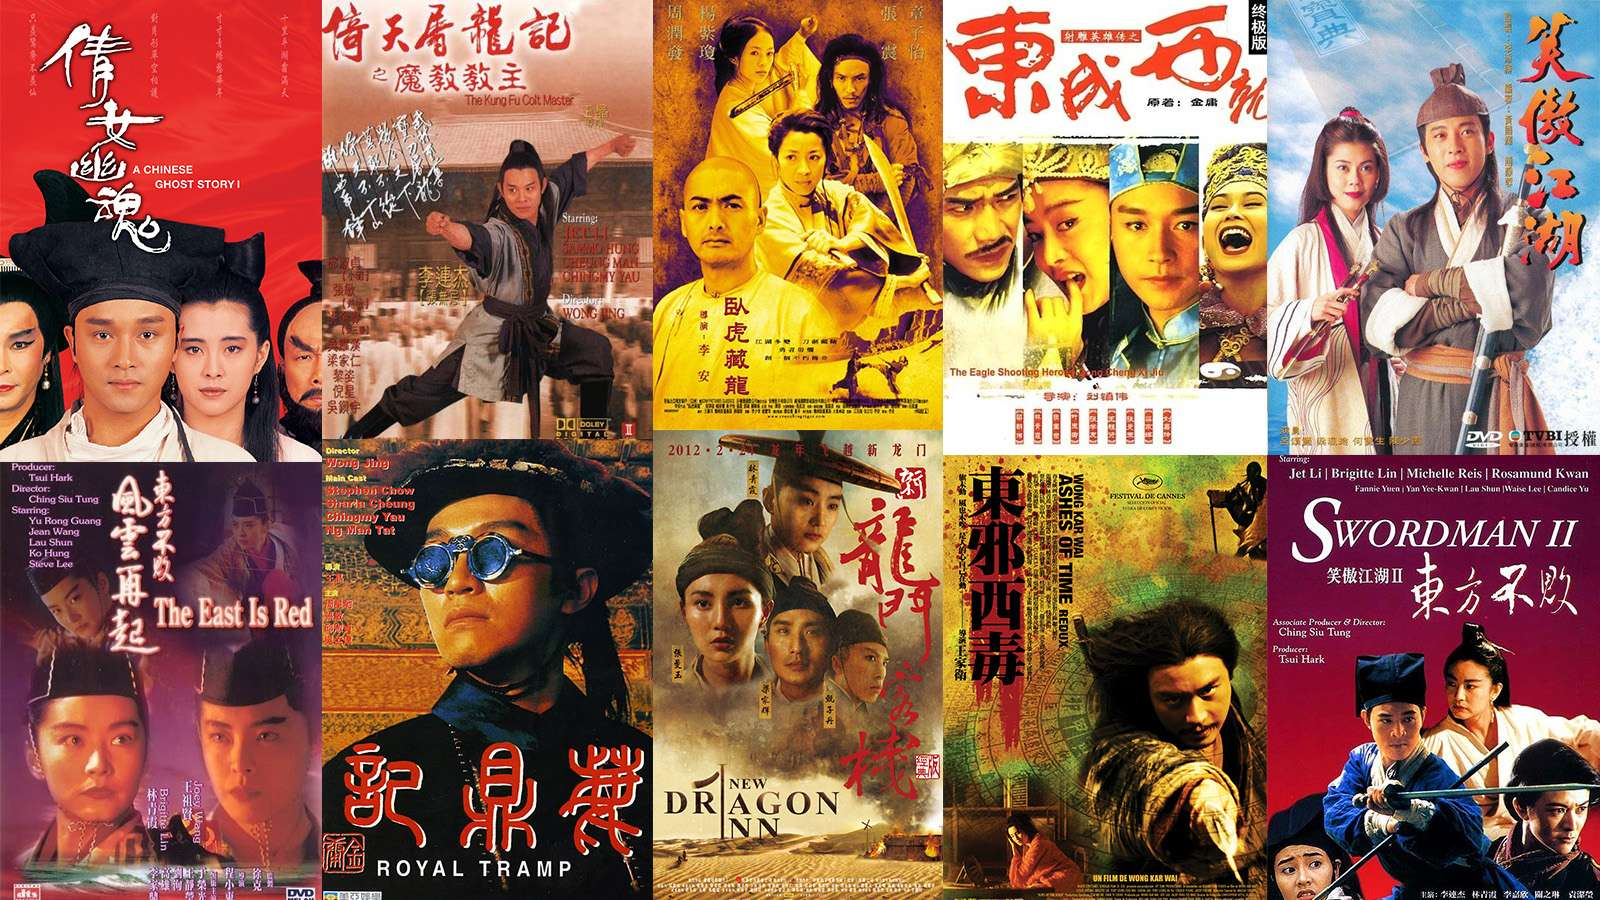 Chinese culture and the spirits behind Chinese wuxia films